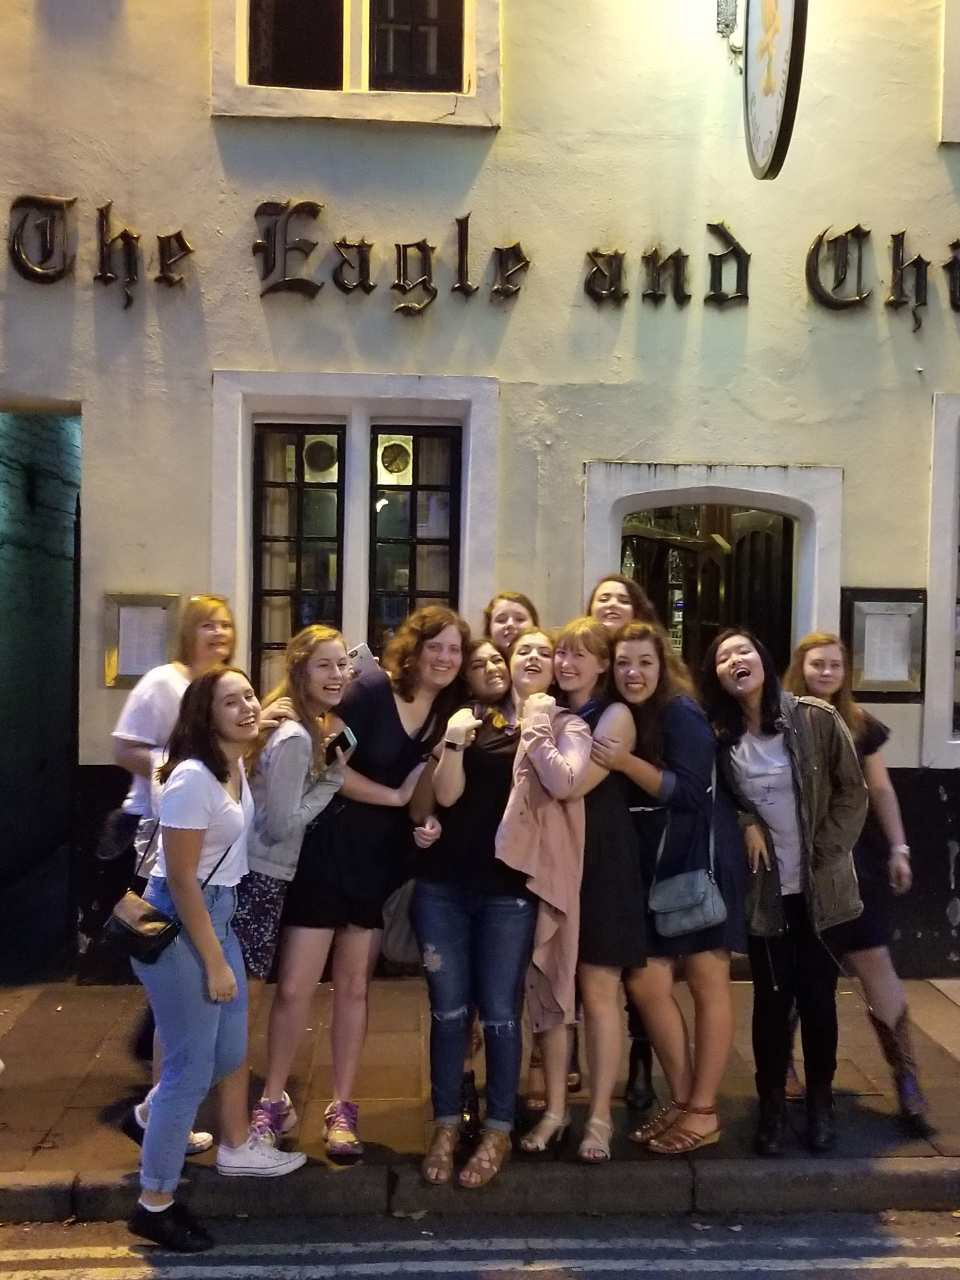 Ogden Honors in Oxford students in front of the The Eagle and Child.